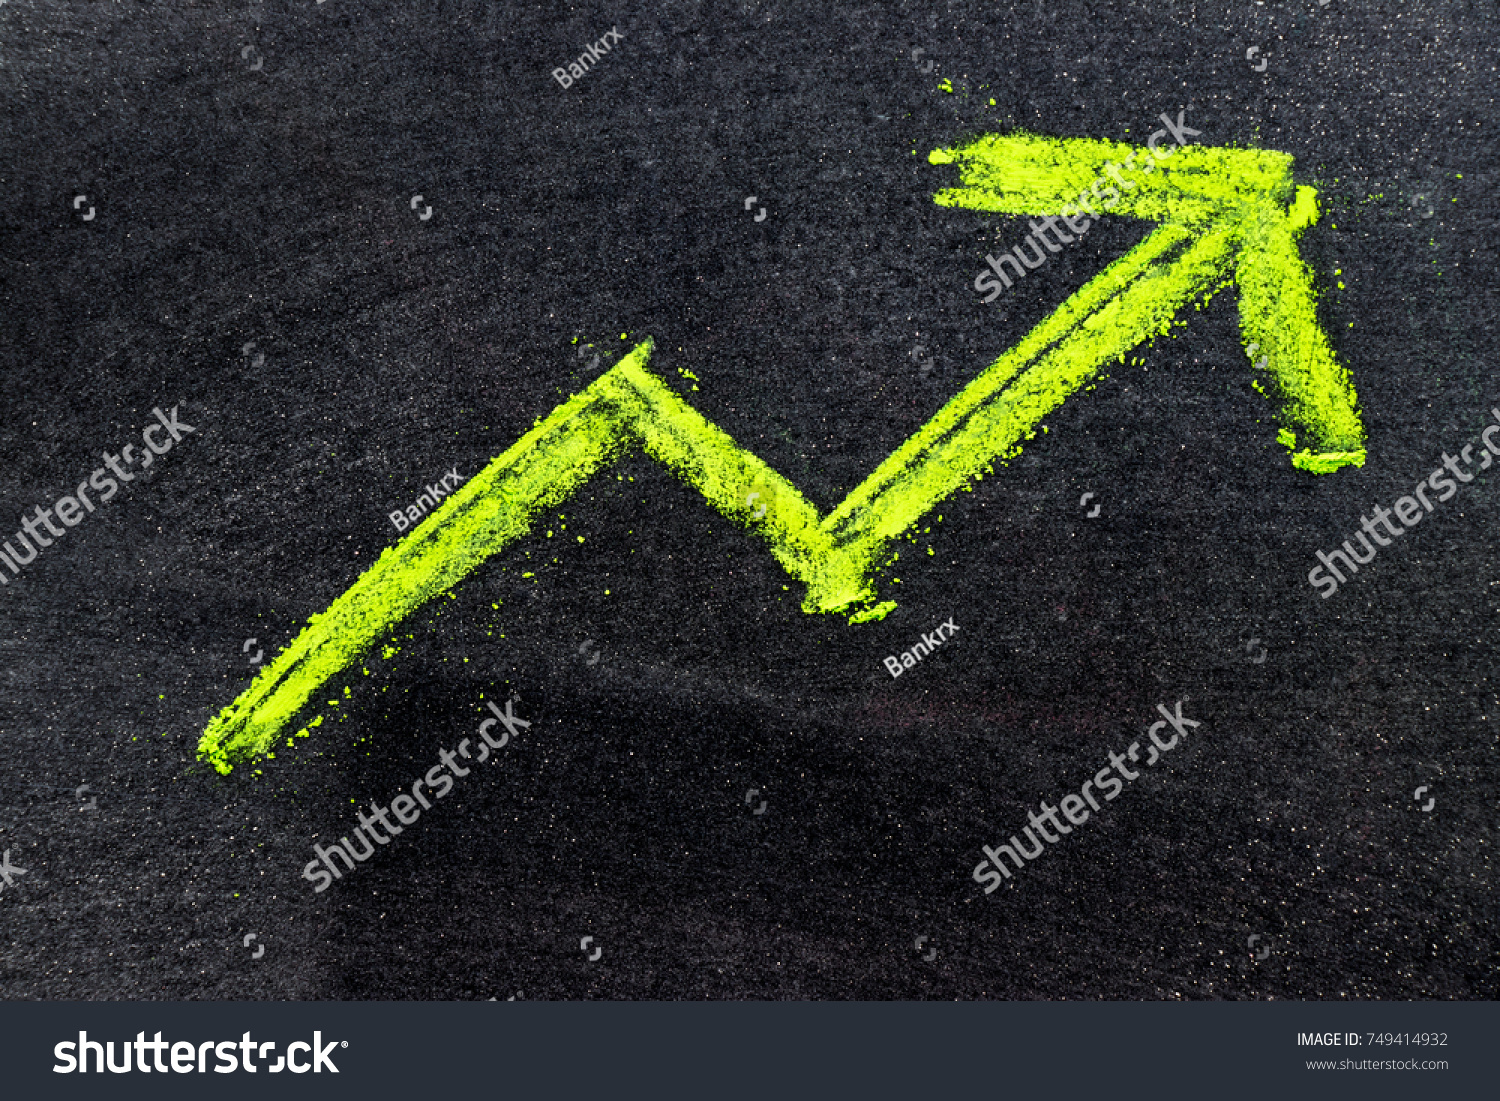 Green Color Hand Drawing Chalk Arrow Stock Photo 749414932 ...